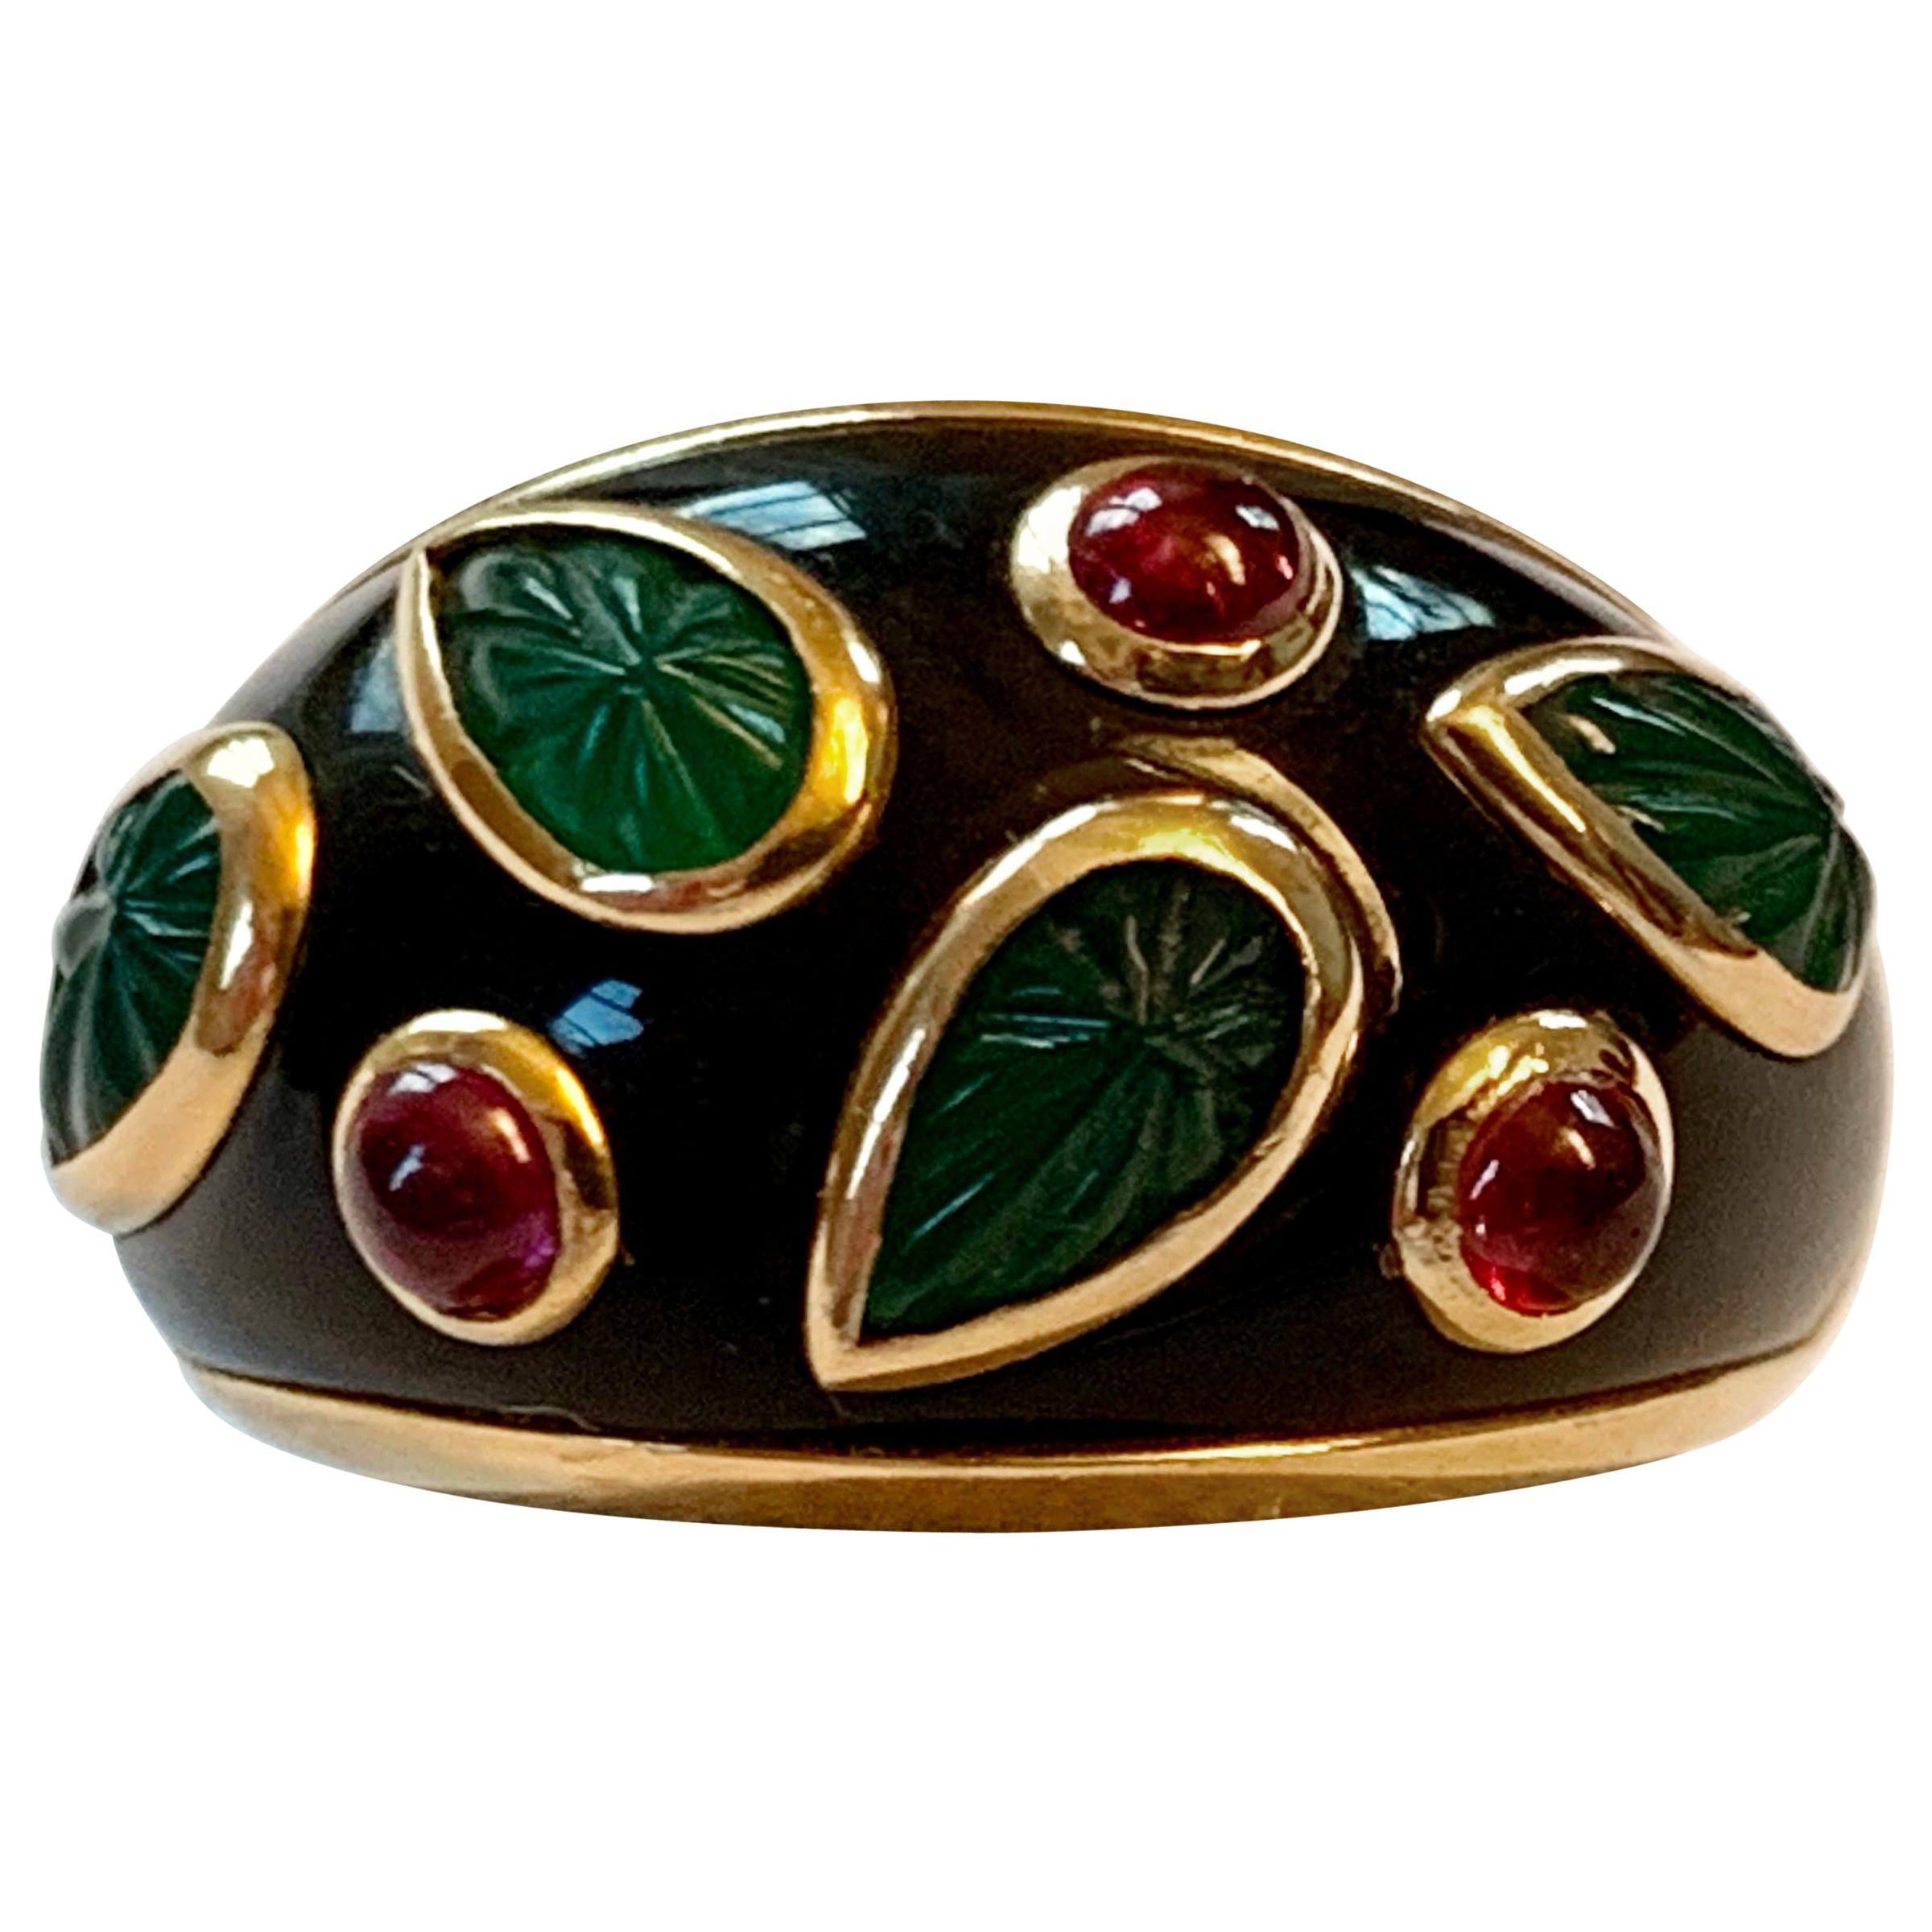 Vintage Cartier Emerald and Ruby Lacquer 18 Karat Gold Ring, circa 1991